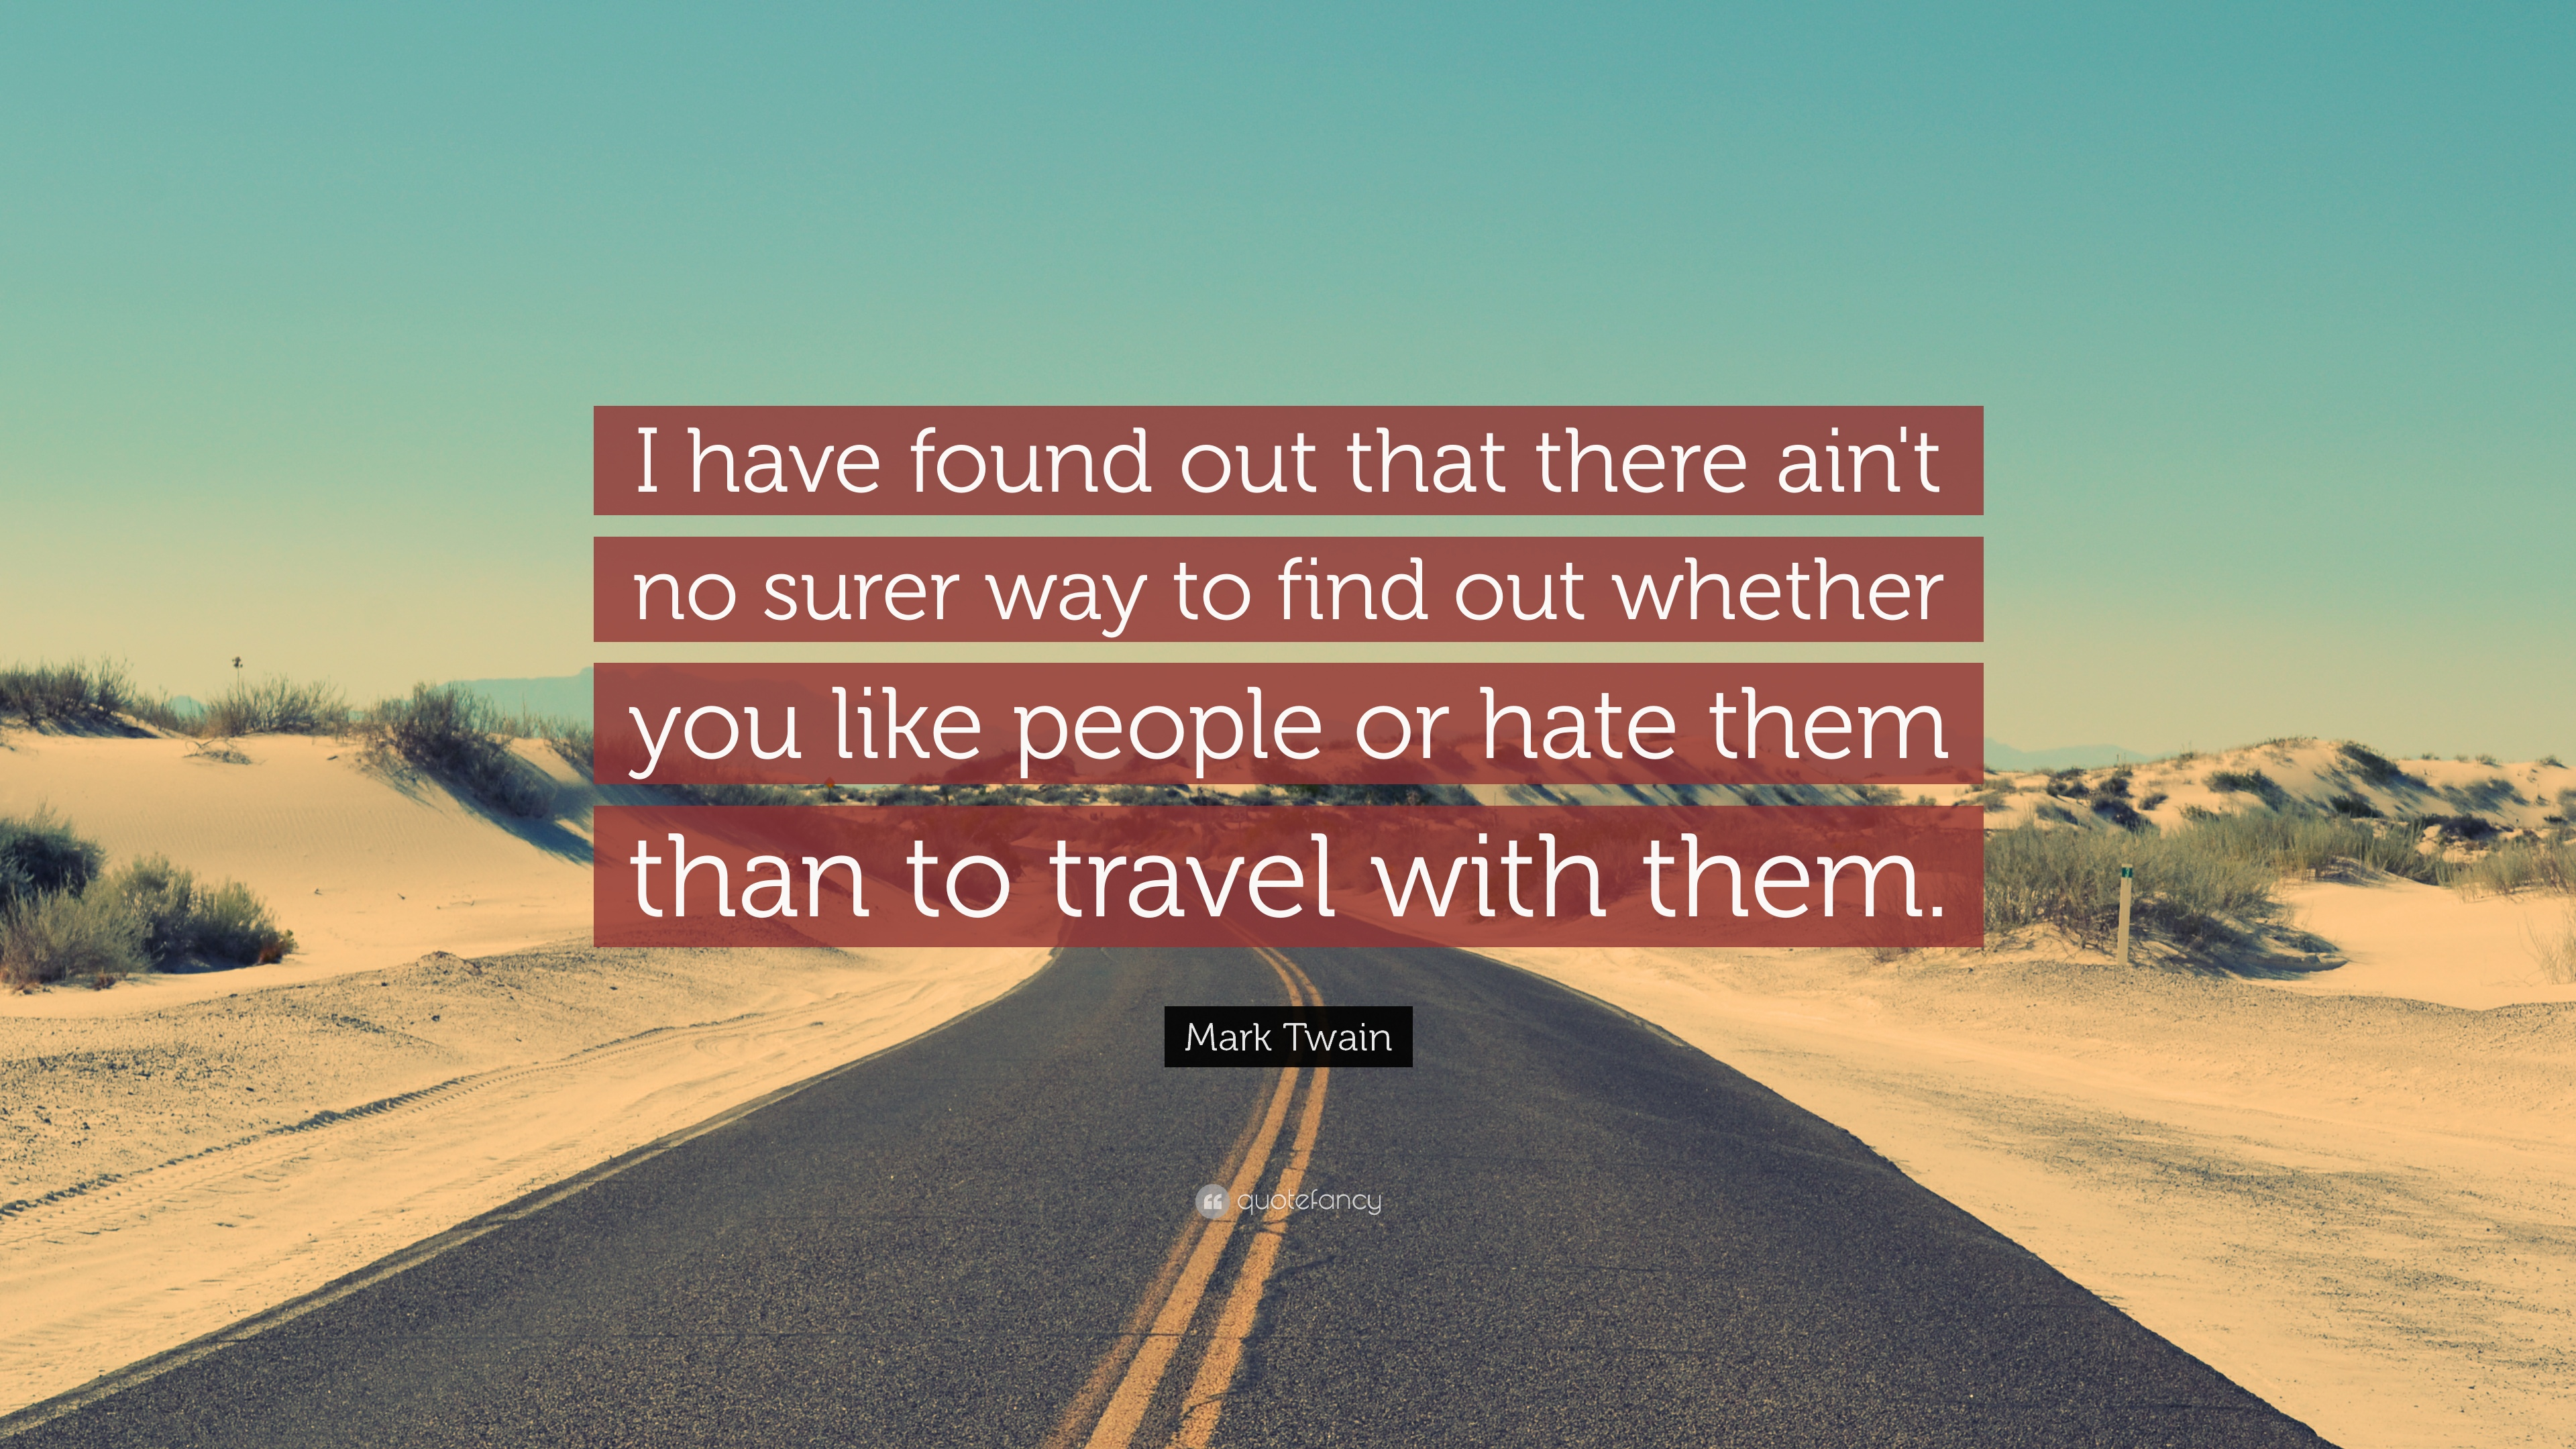 4450-Mark-Twain-Quote-I-have-found-out-that-there-ain-t-no-surer-way-to